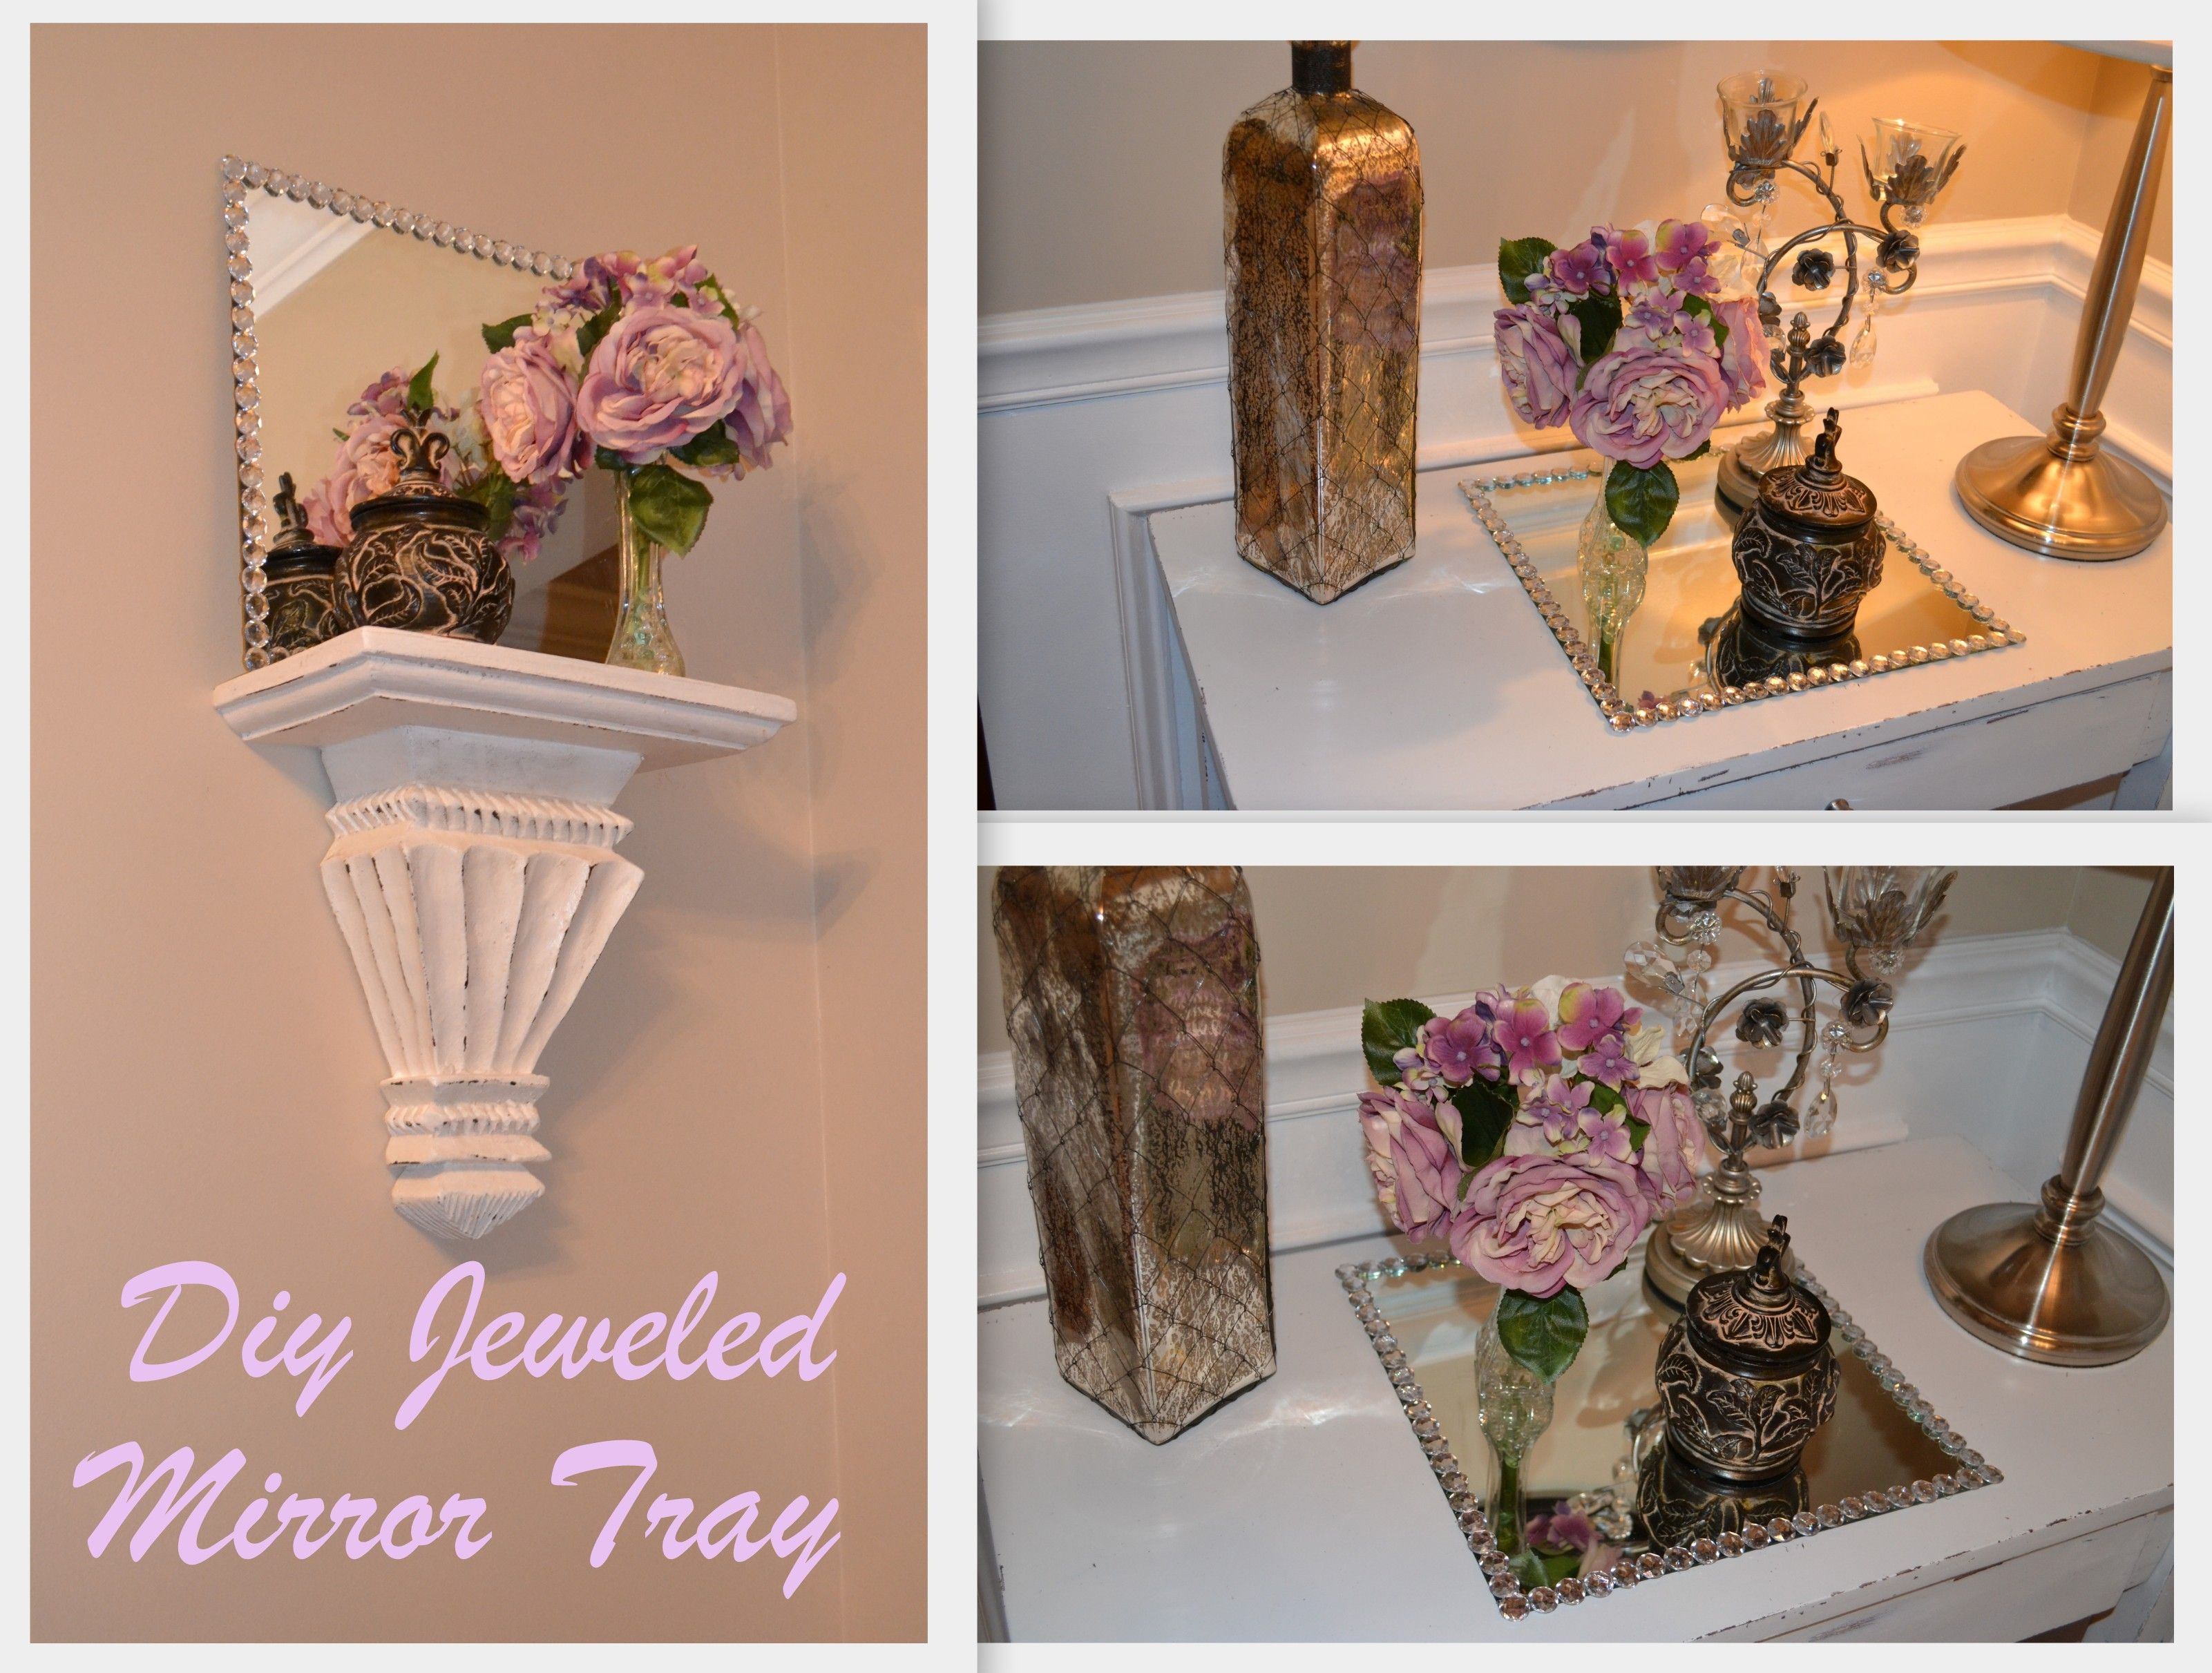 DIY Jeweled Mirror Tray you can go to Lowes and have them cut any